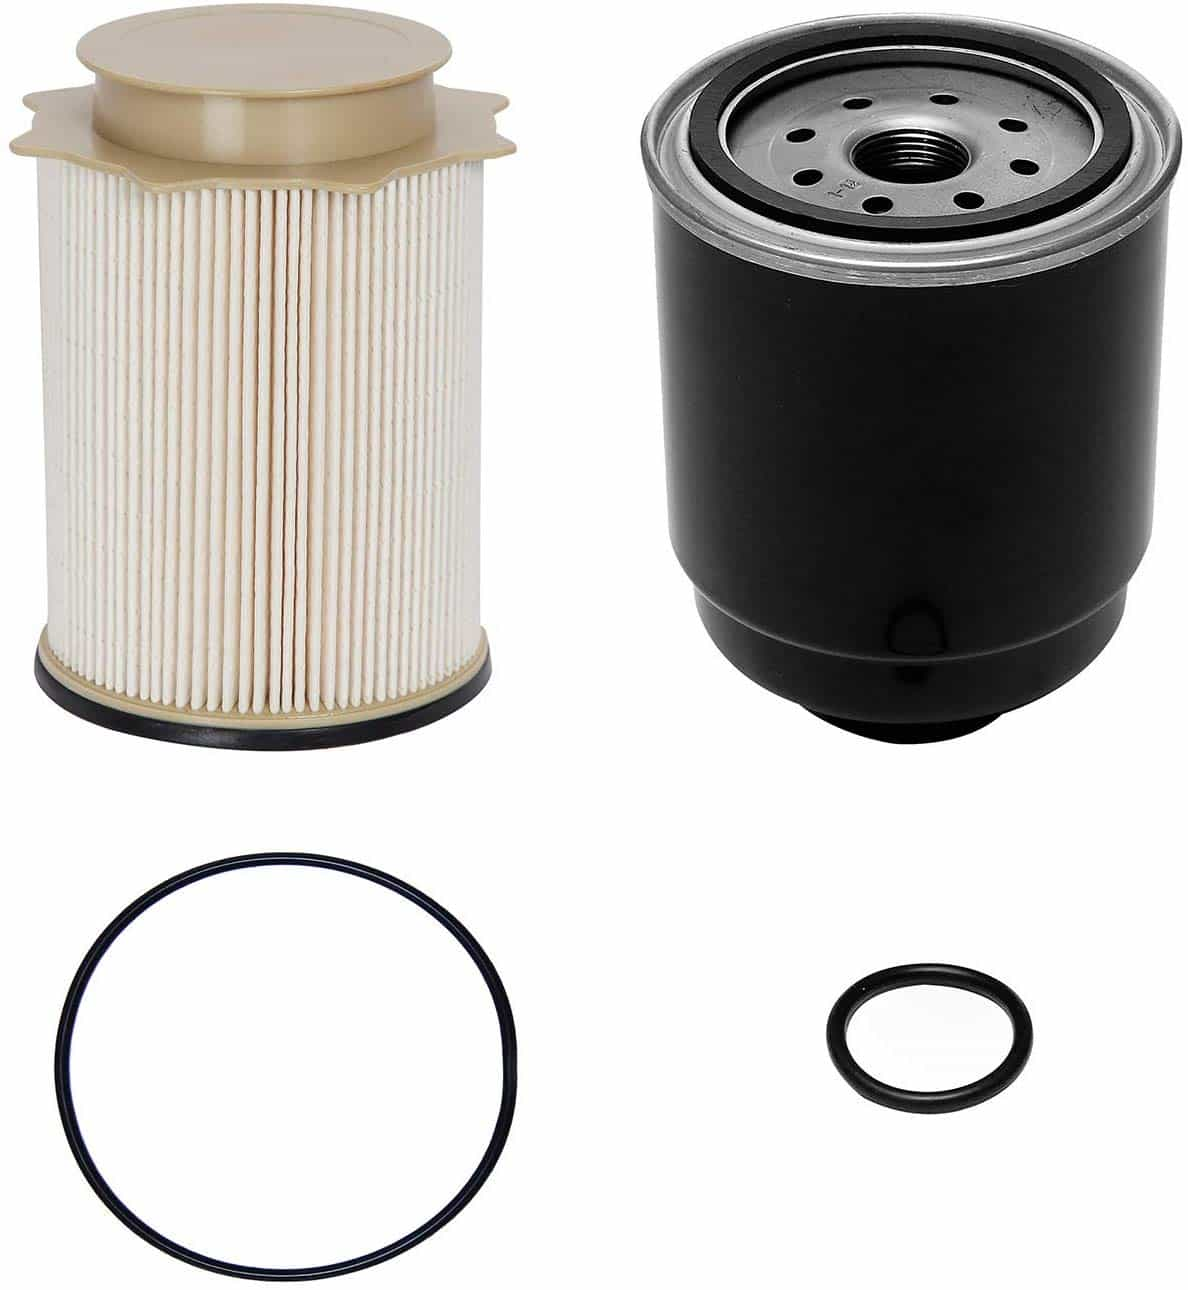 6.7L-Cummins-Fuel-Filter-Water-Separator-Set